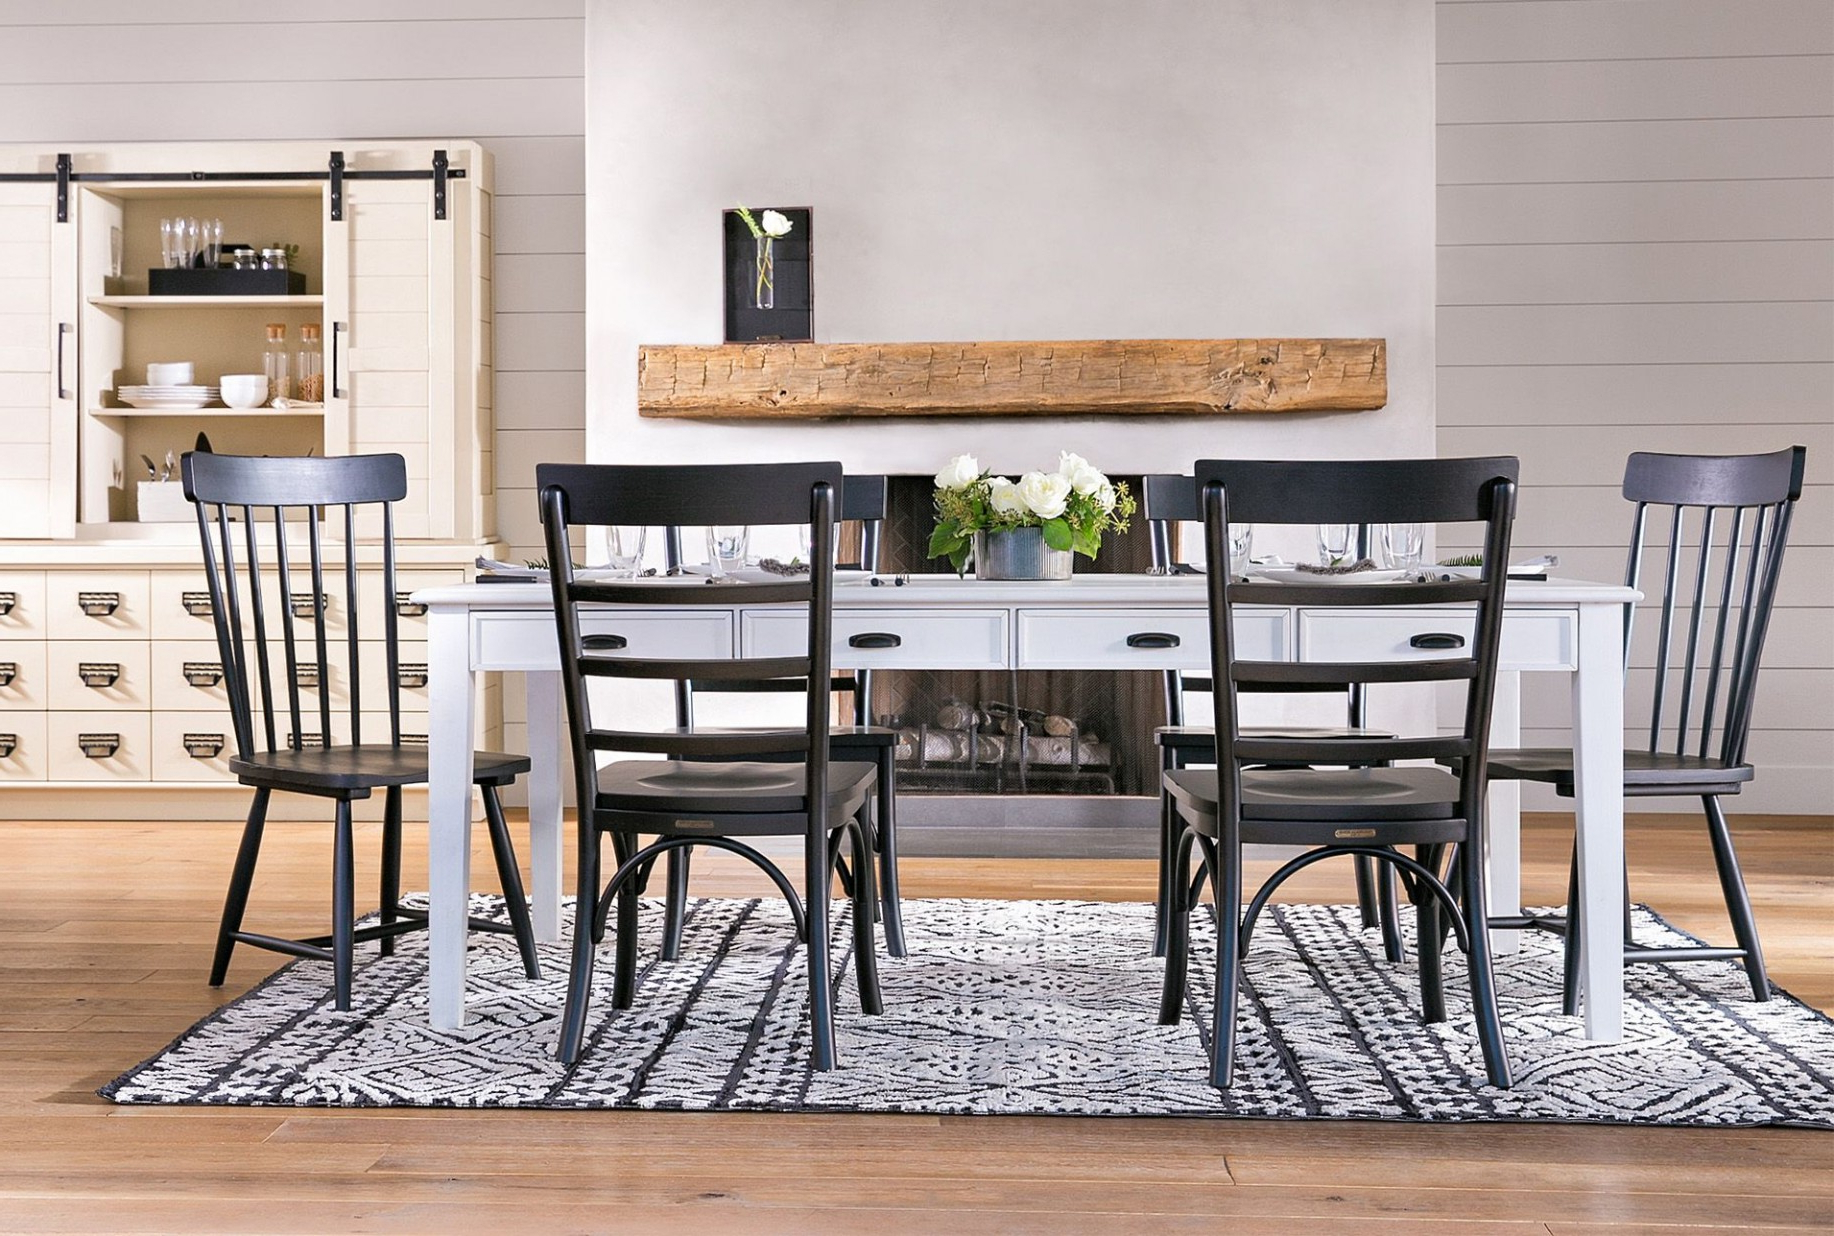 Preferred Joanna Gaines Dining Room Table Fresh Living Spaces Spring 2018 Intended For Magnolia Home Ellipse Cocktail Tables By Joanna Gaines (Gallery 14 of 20)